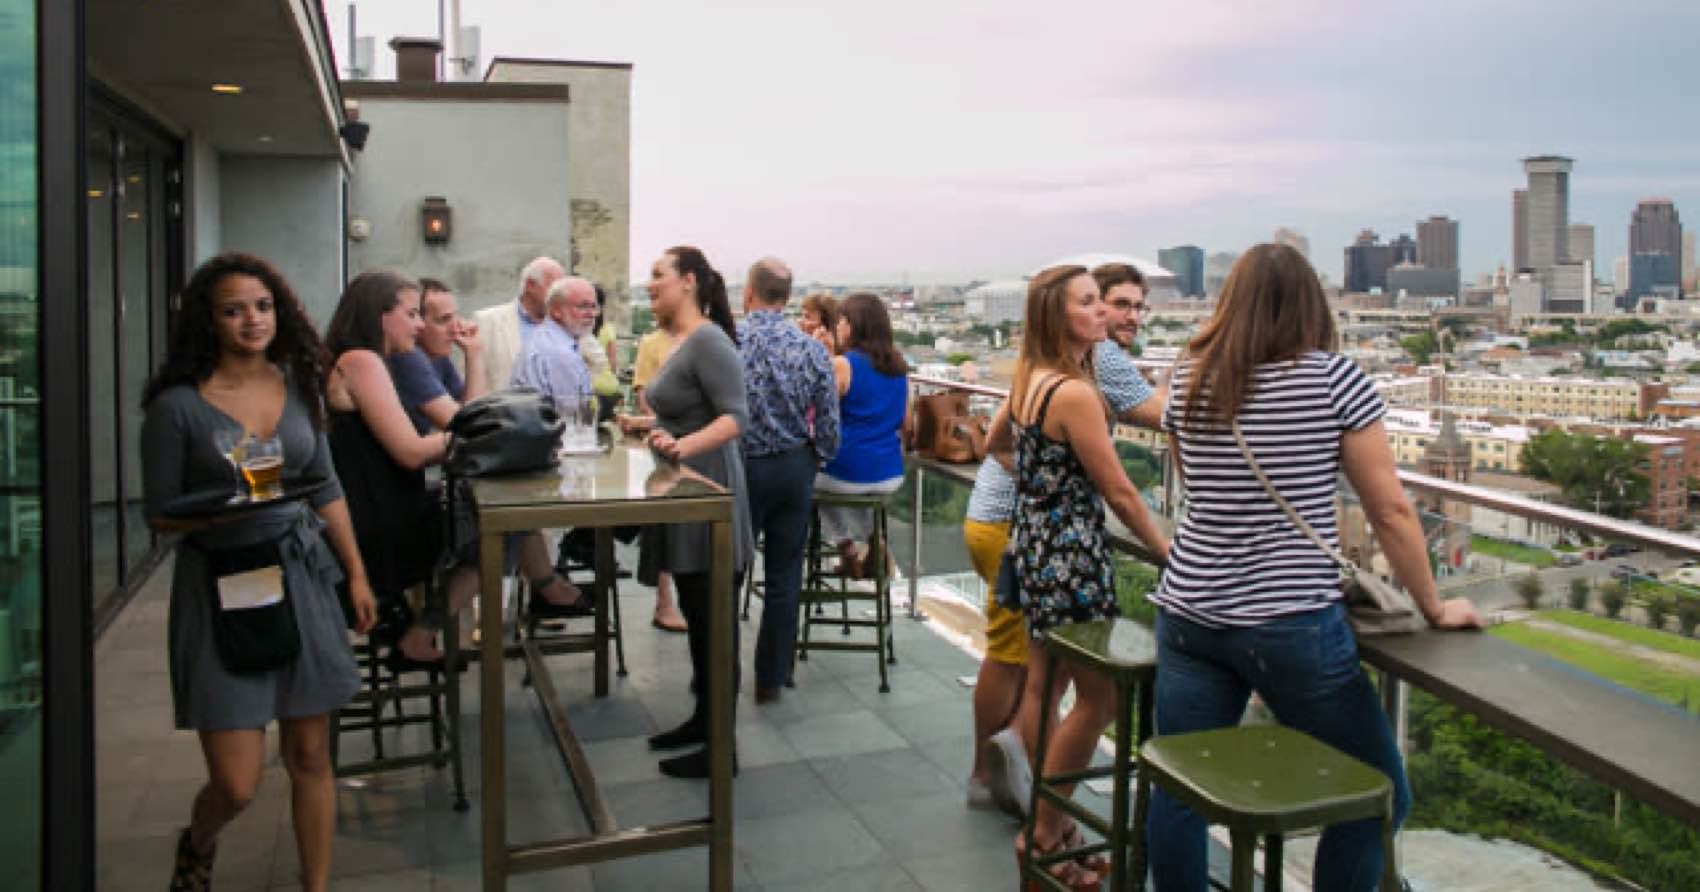 The great view from Hot Tin Rooftop Bar